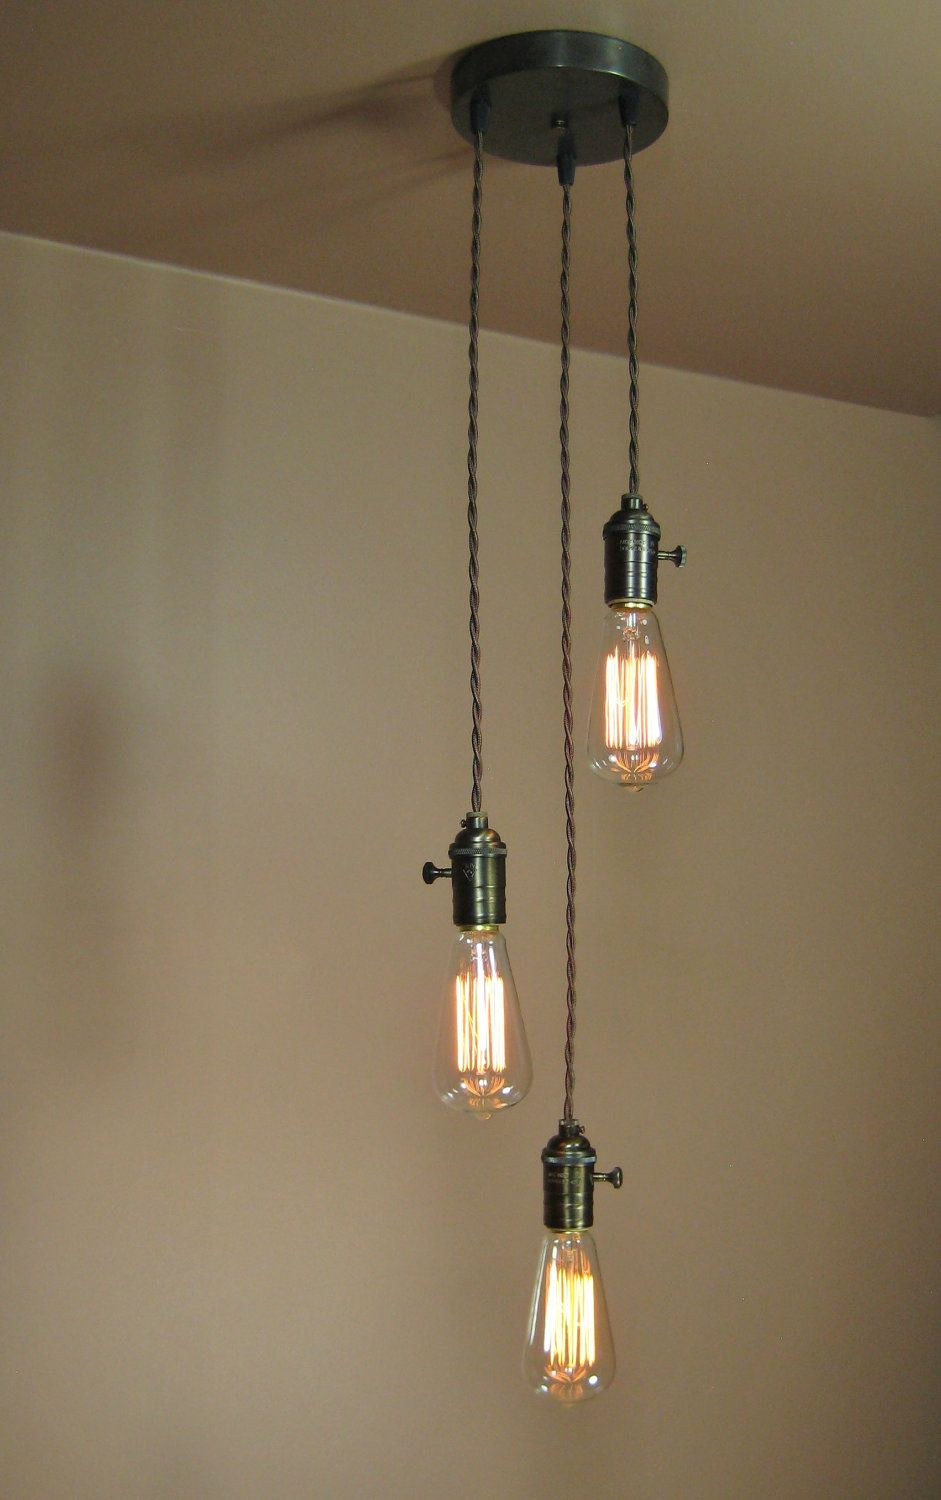 3 Light Chandelier Cascading Pendant Lights With Edison Light